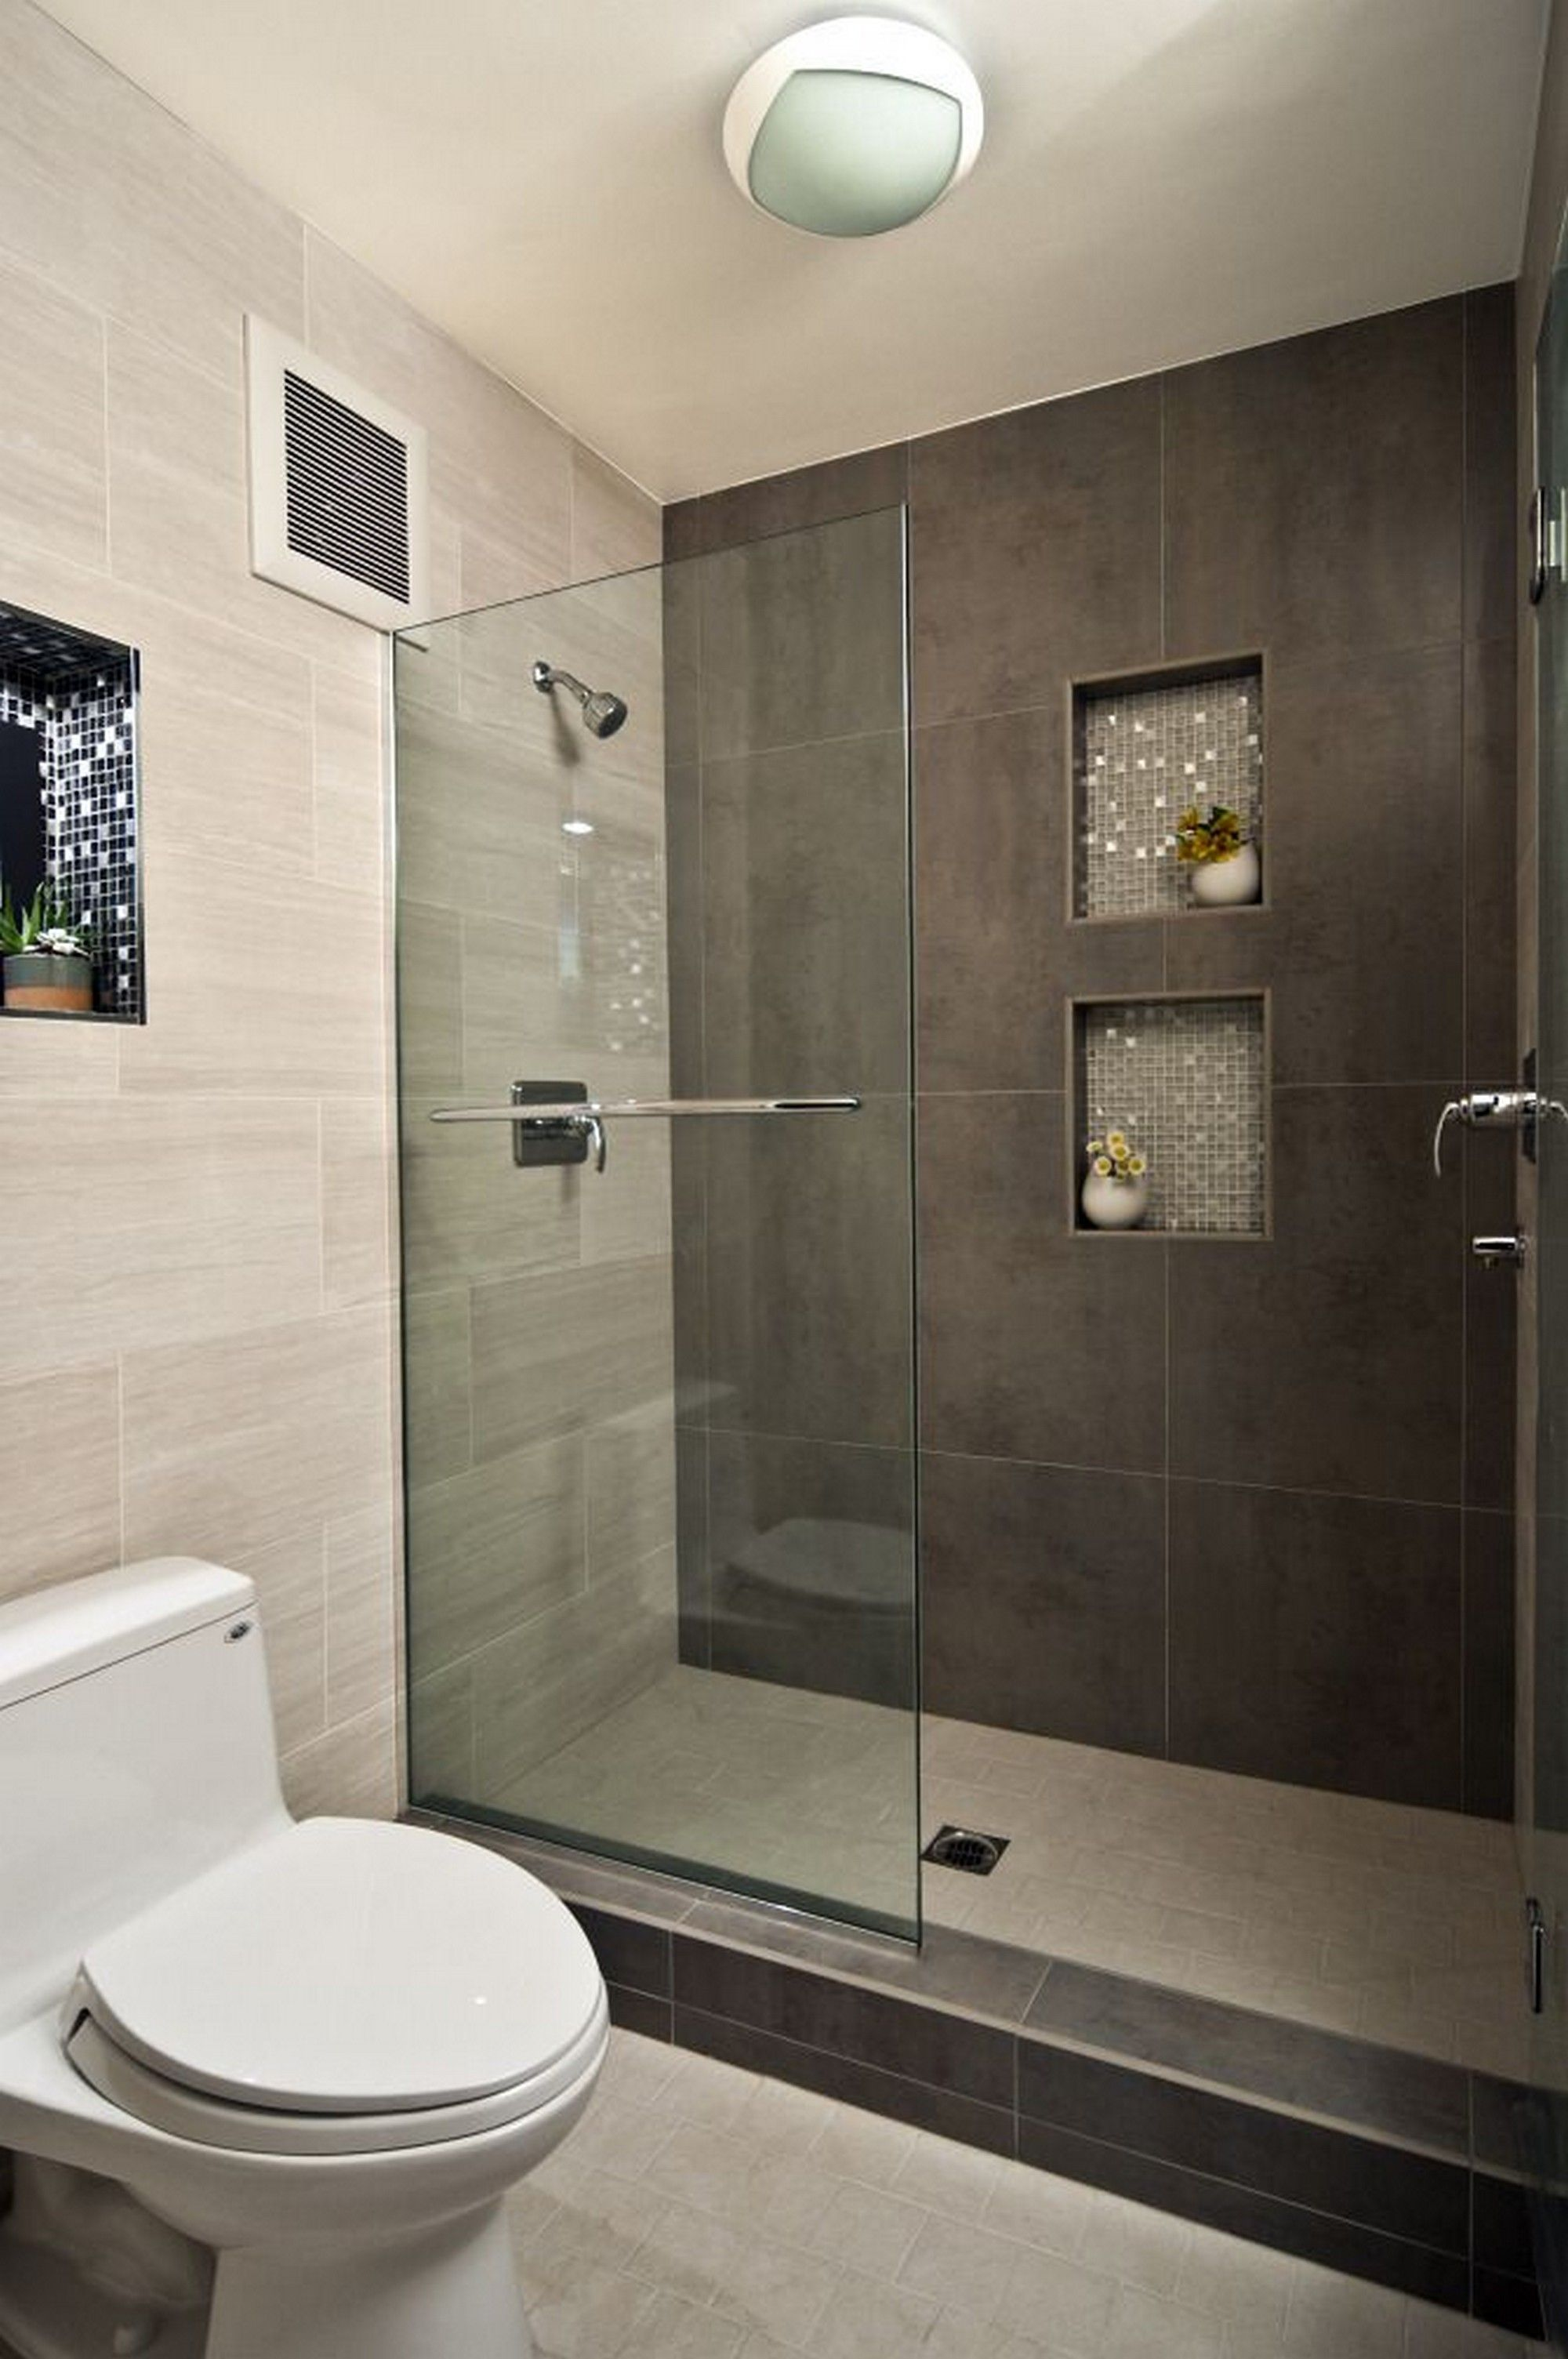 Modern bathroom design ideas with walk in shower small Small bathroom designs